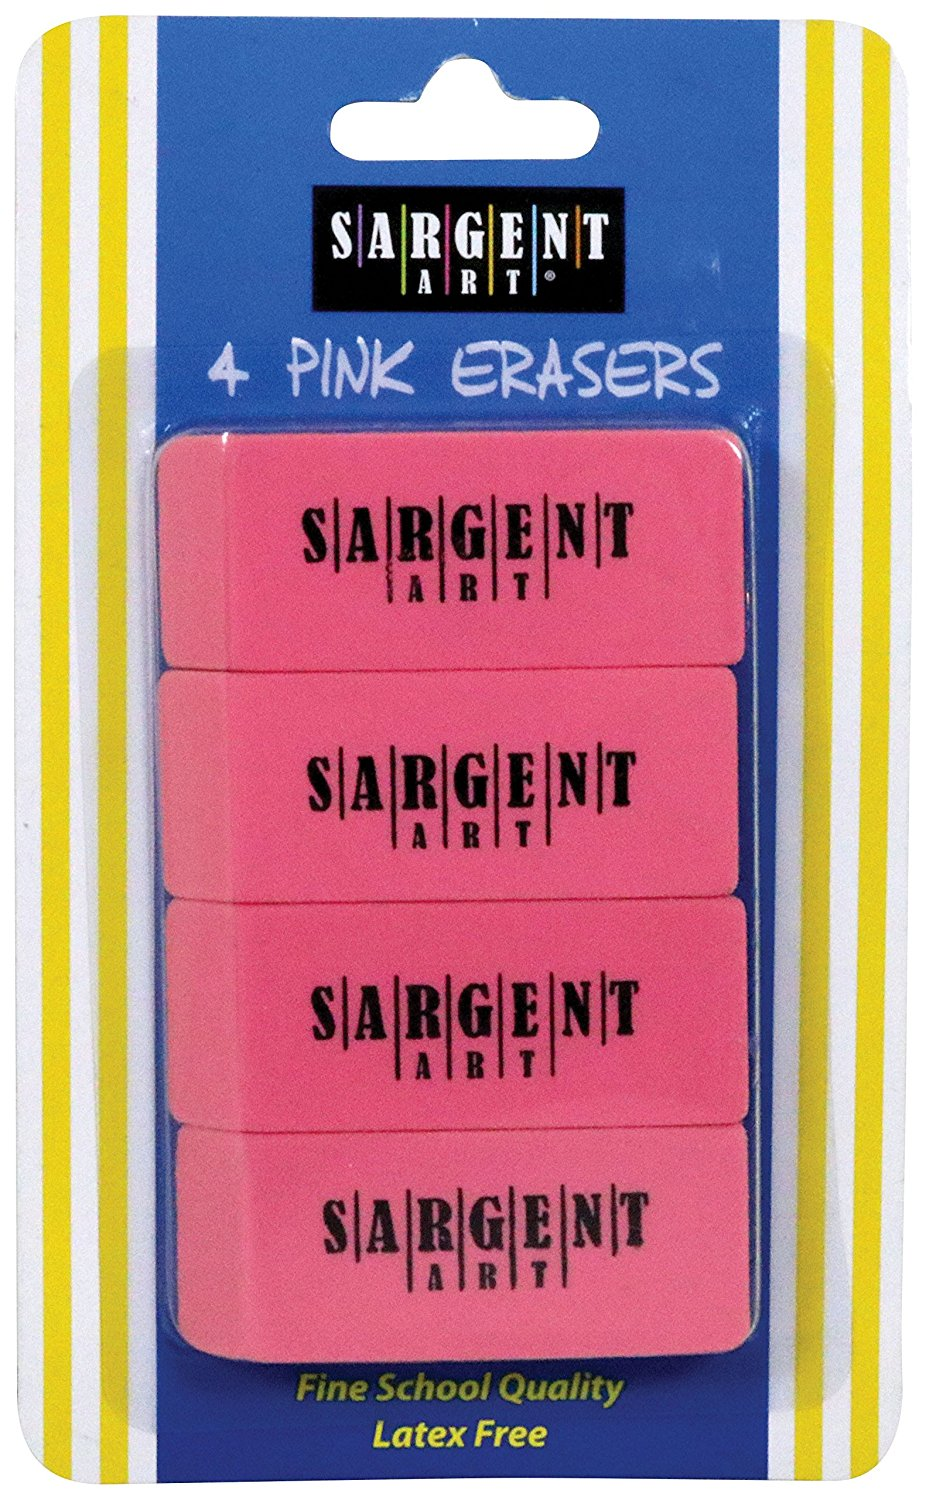 Sargent Art 4 Count Eraser Pack